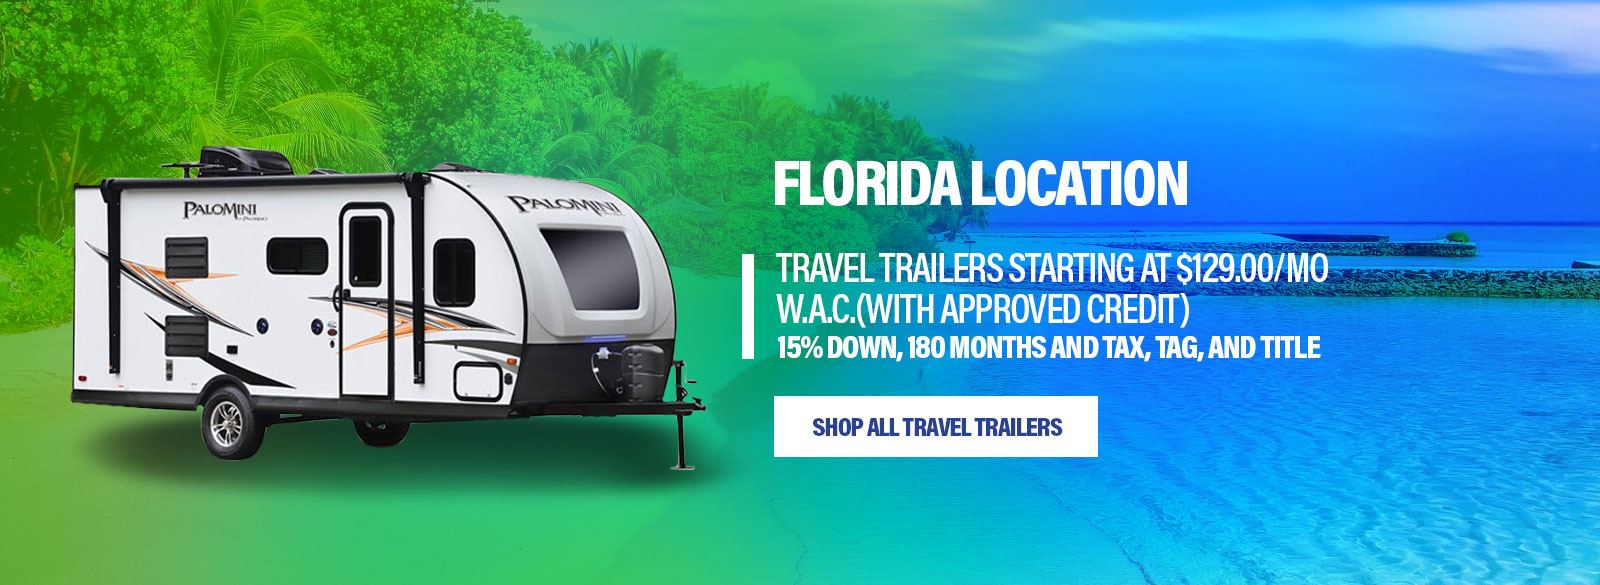 TriAmRV_FloridaLocation_HomepageBanner2019Palomini180F_May19.jpg